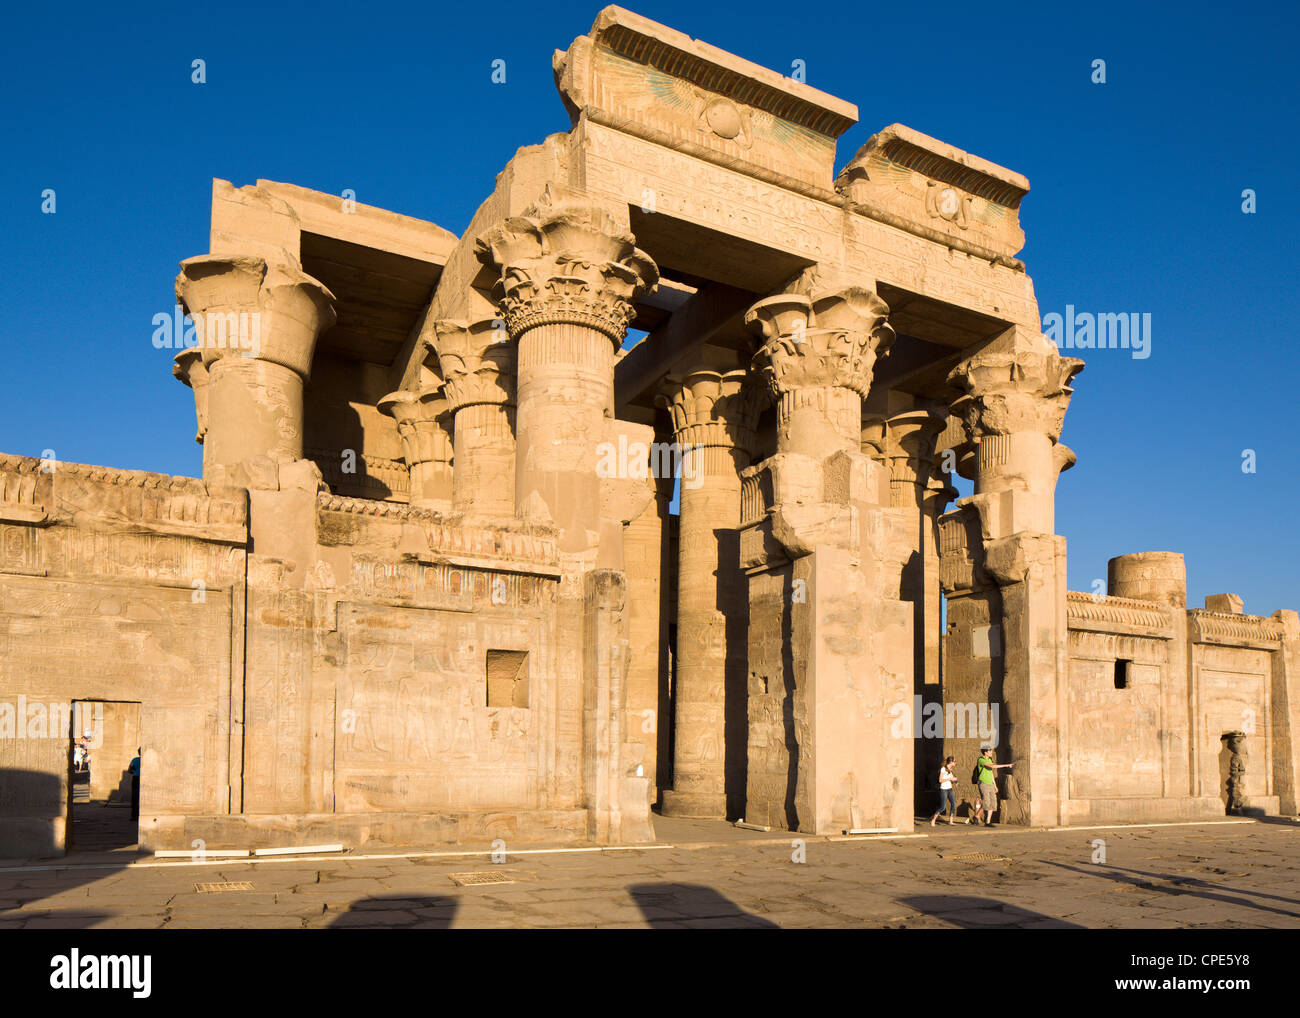 The twin Temple of Sobek and Haroeris, Kom Ombo, Egypt, North Africa, Africa Stock Photo